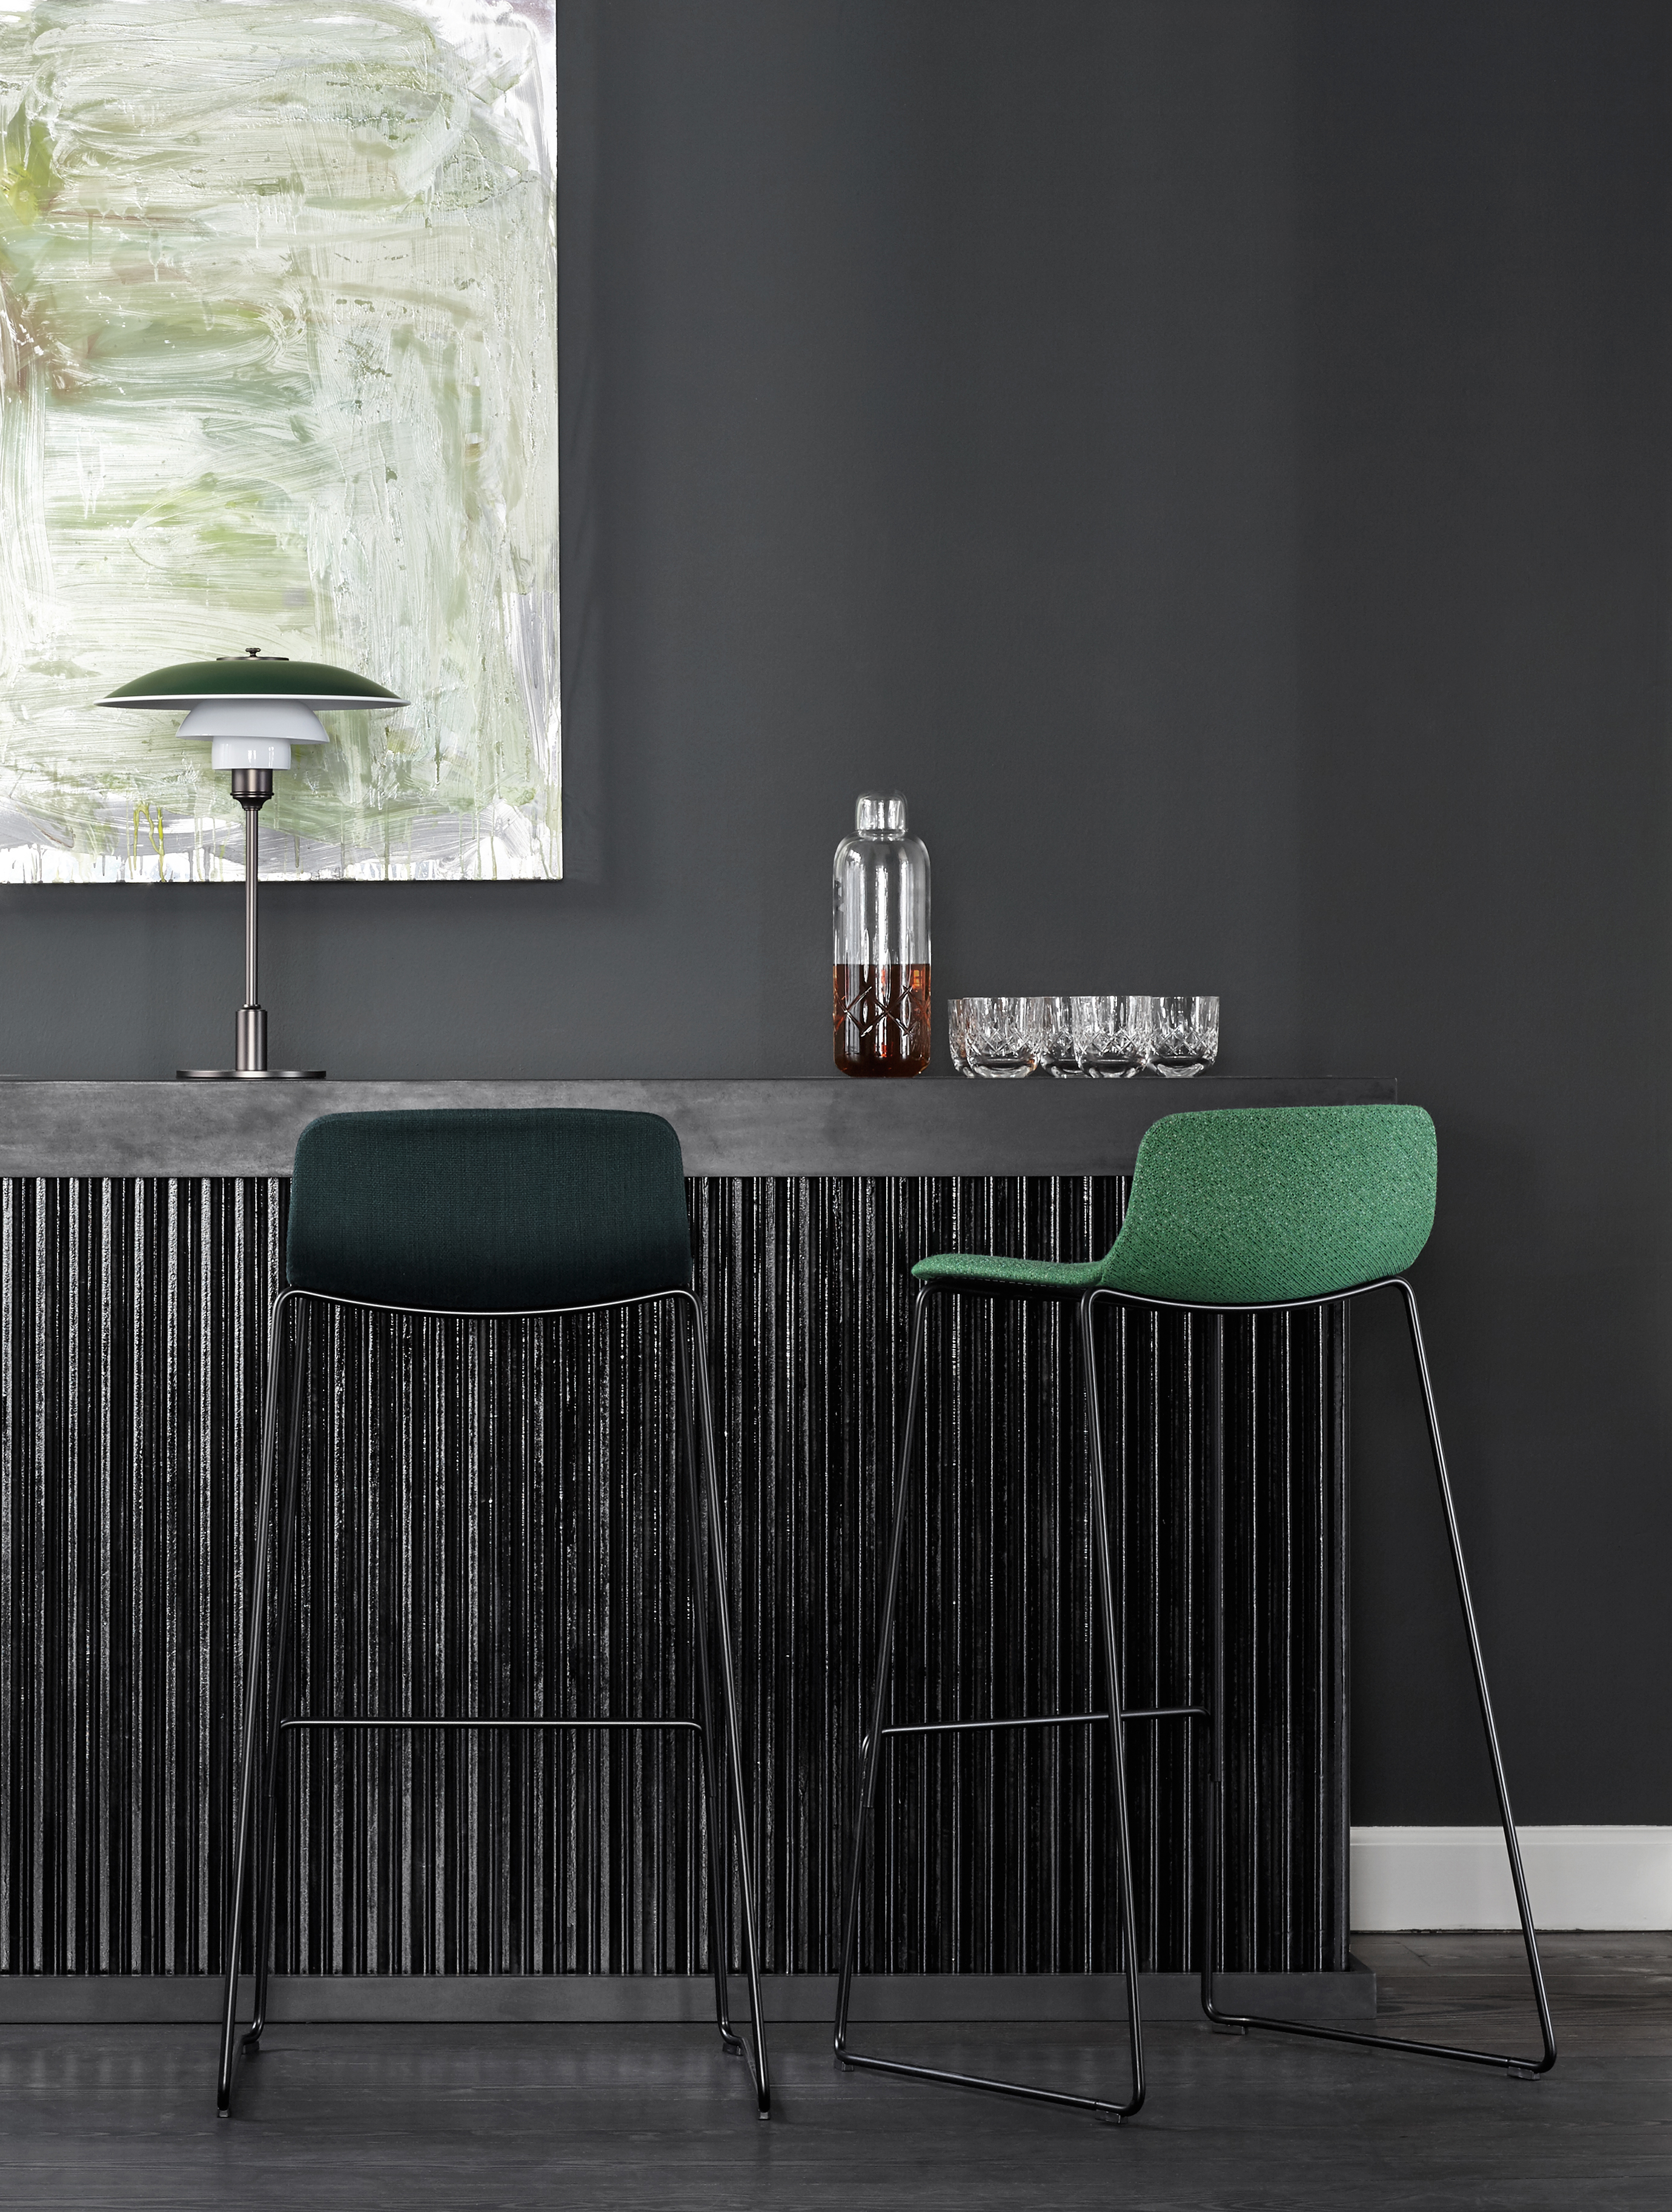 Plato Stool By Welling Ludwig For Fredericia